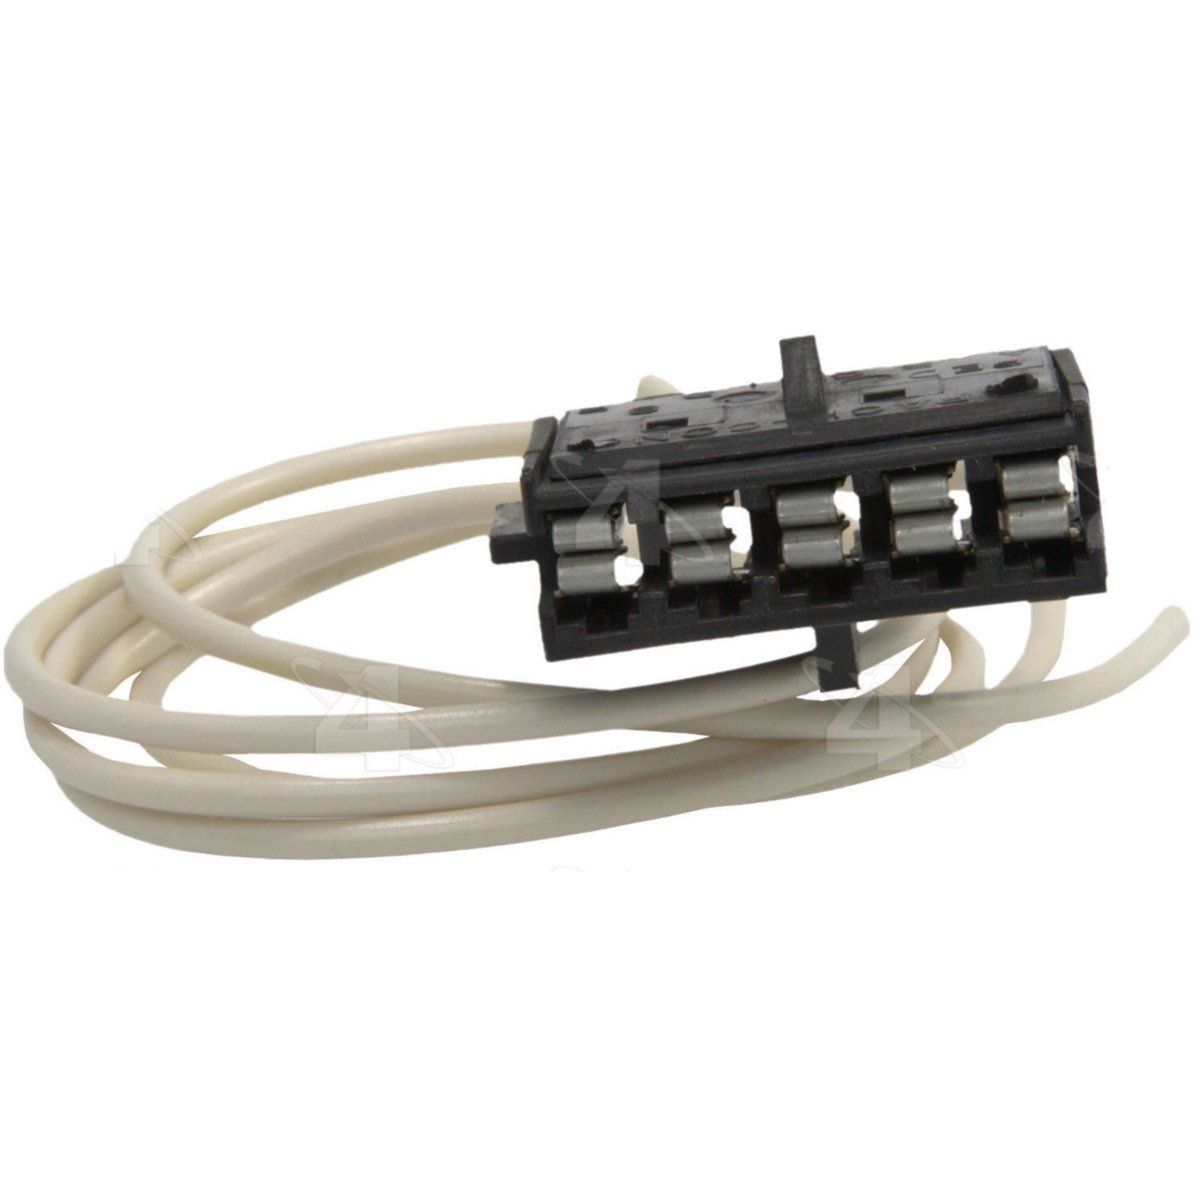 image is loading 4-seasons-four-seasons-a-c-ac-wiring-harness-